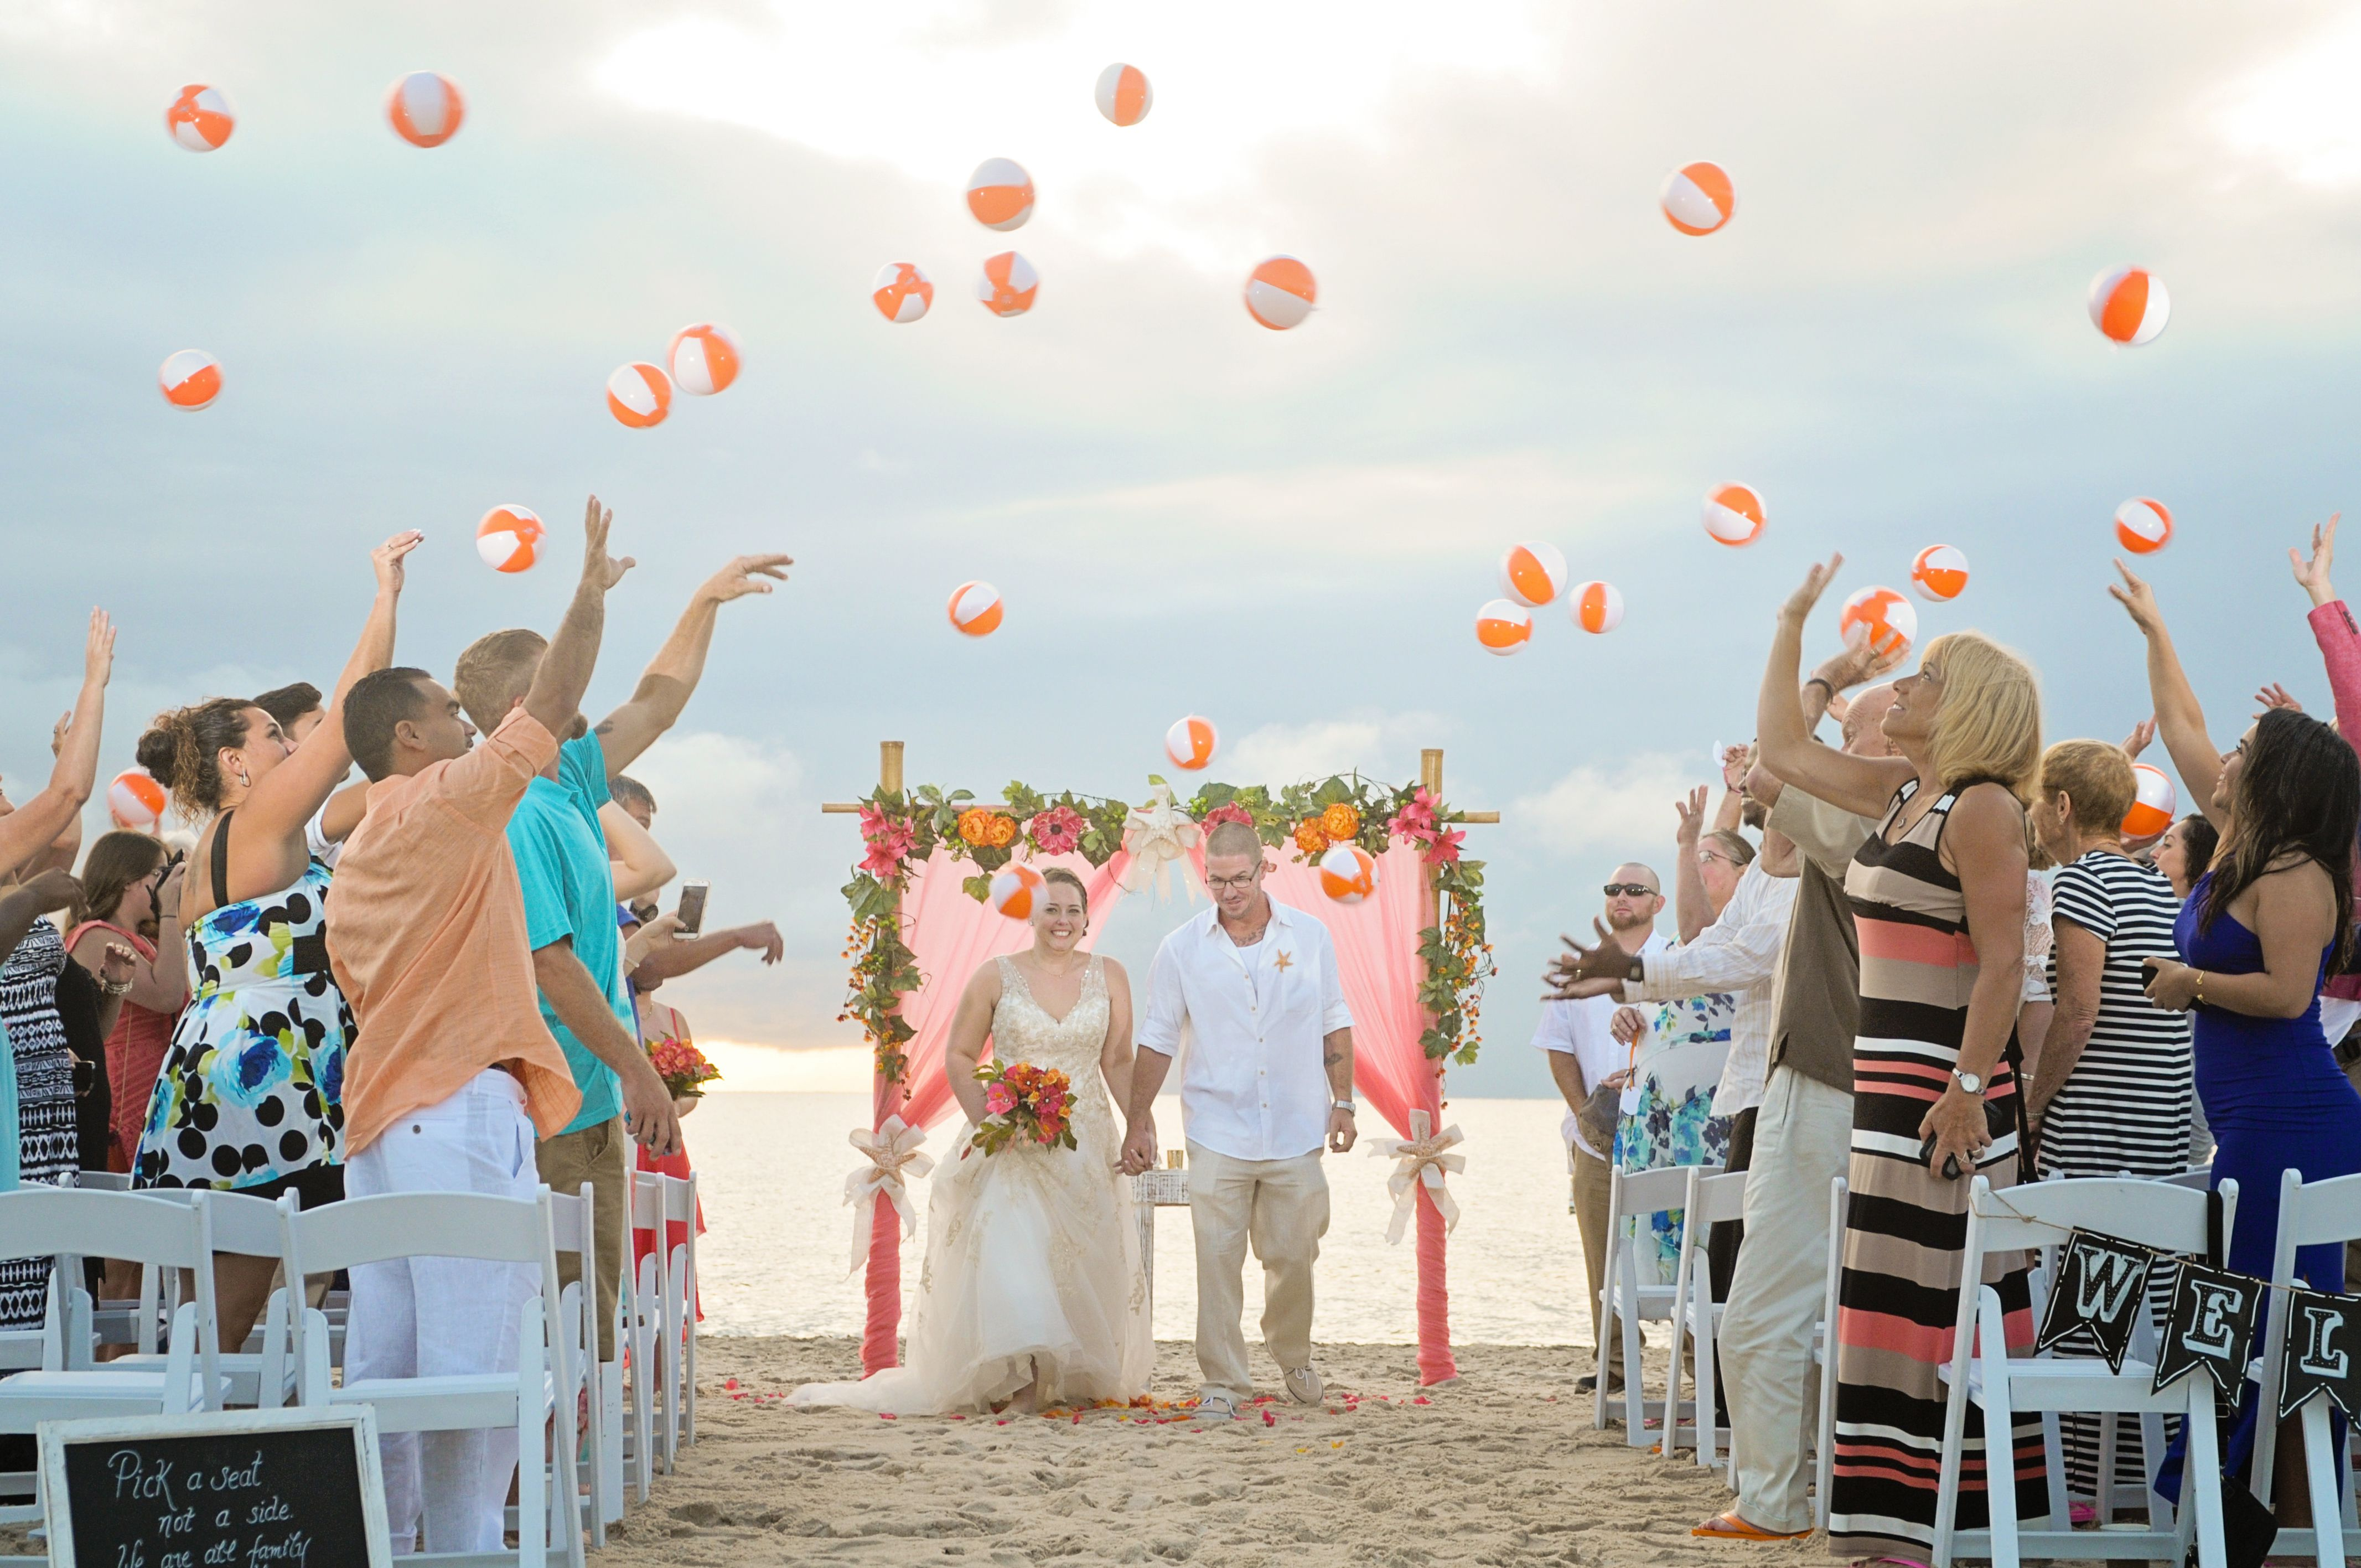 Congrats to Mary and Jason for their fun in the sung Pompano Beach North Ocean Park beach wedding. Photo by Mike Rice, http://www.mikericephotography.com/